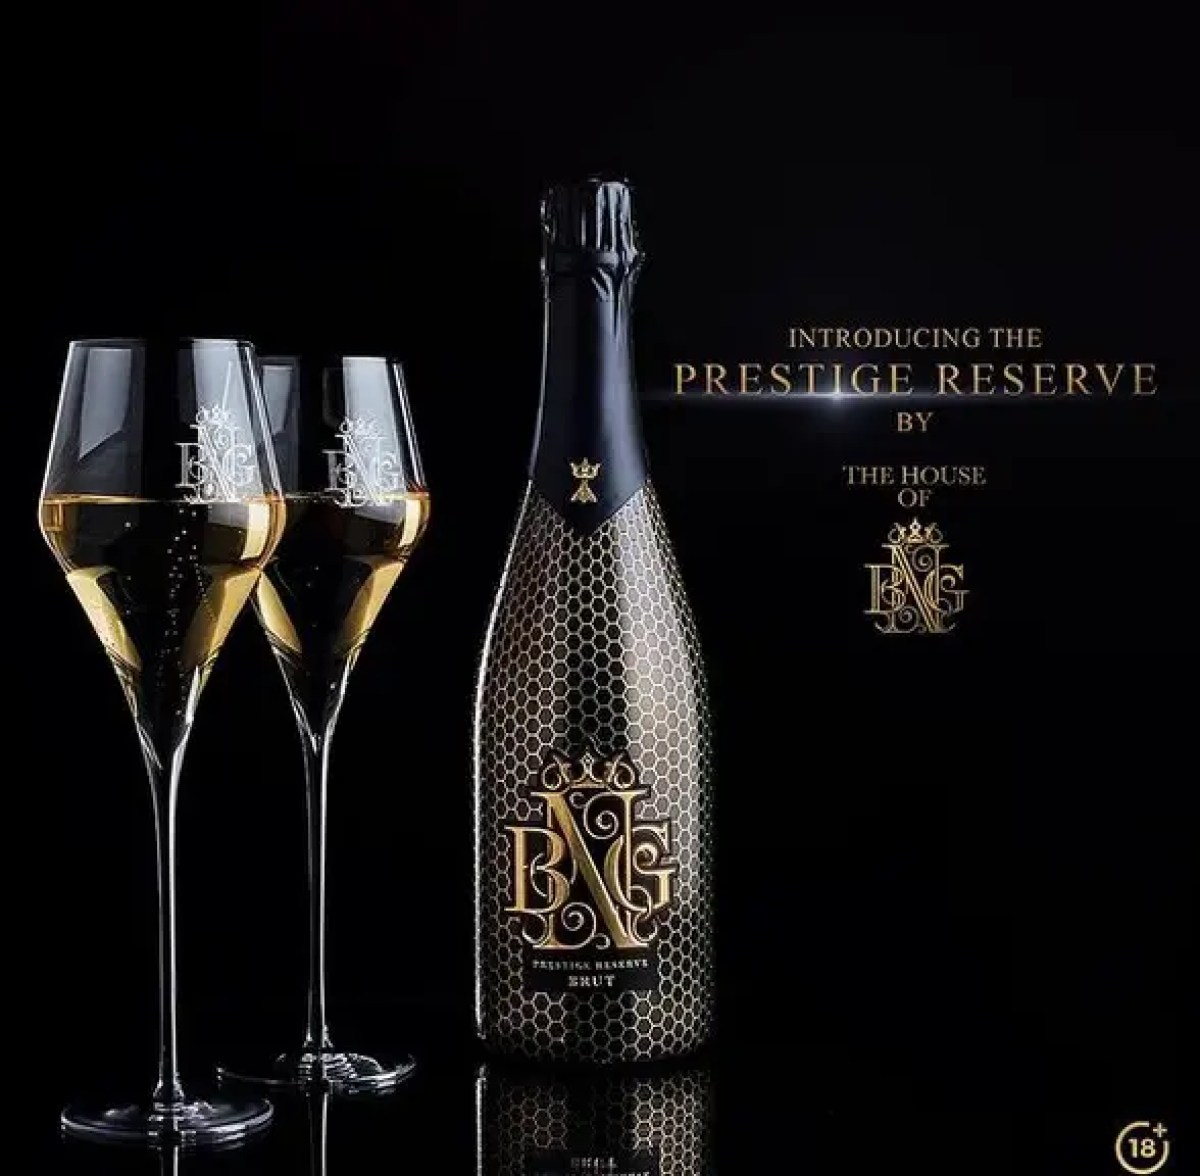 Prestige Reserve by the House of BNG